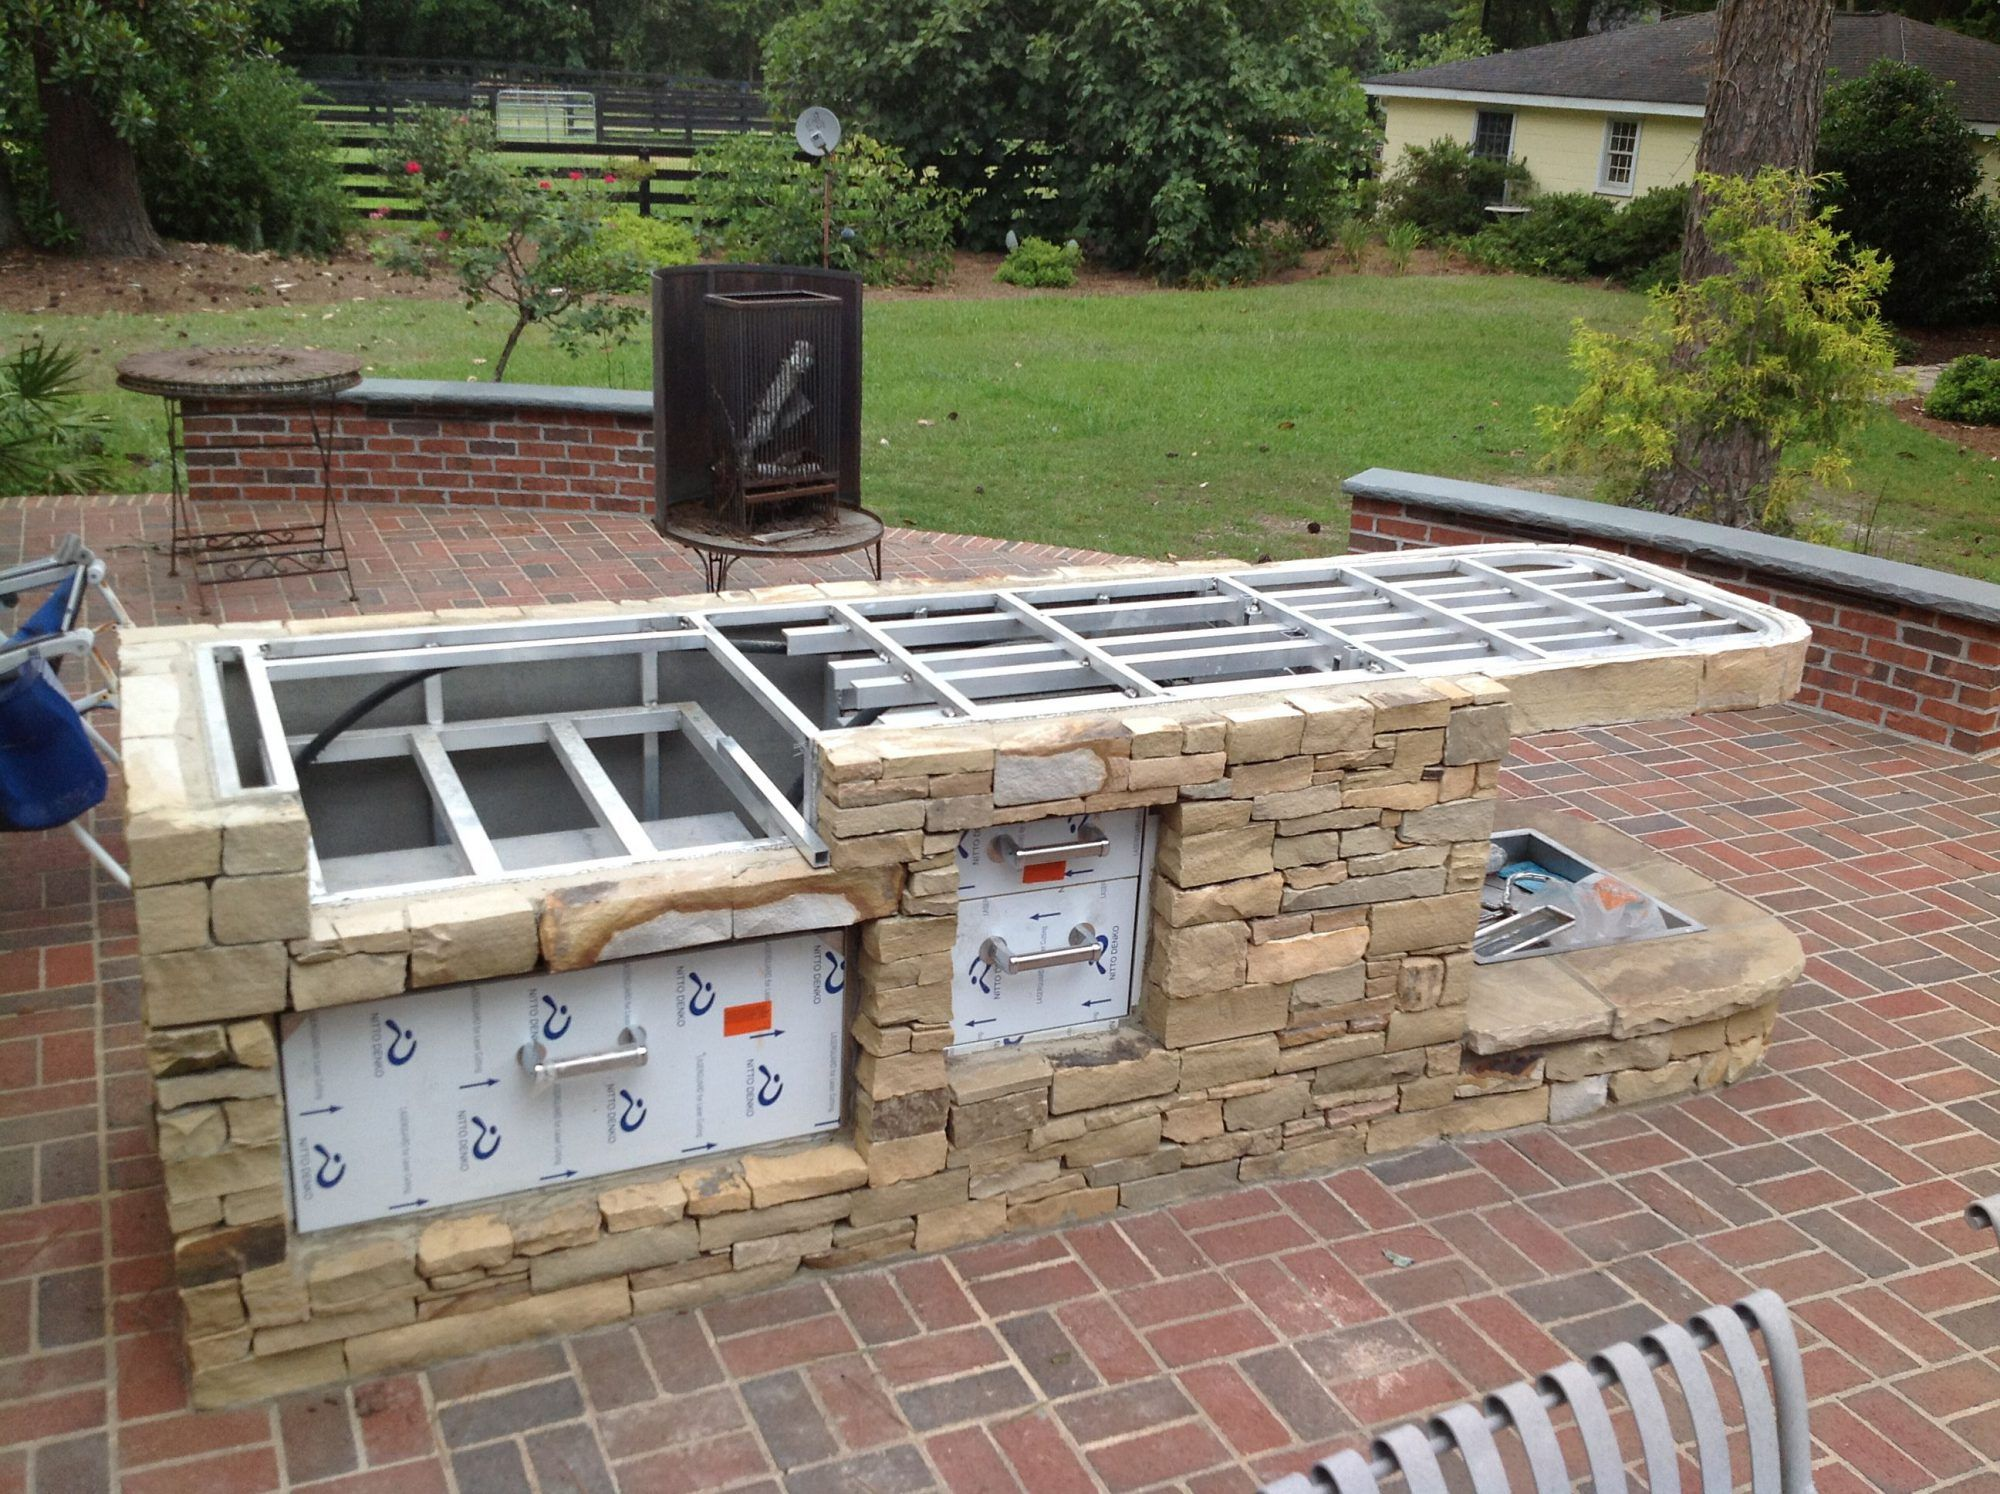 3 Plans to Make a Simple Outdoor Kitchen (With images) | Build outdoor kitchen, Outdoor kitchen ...